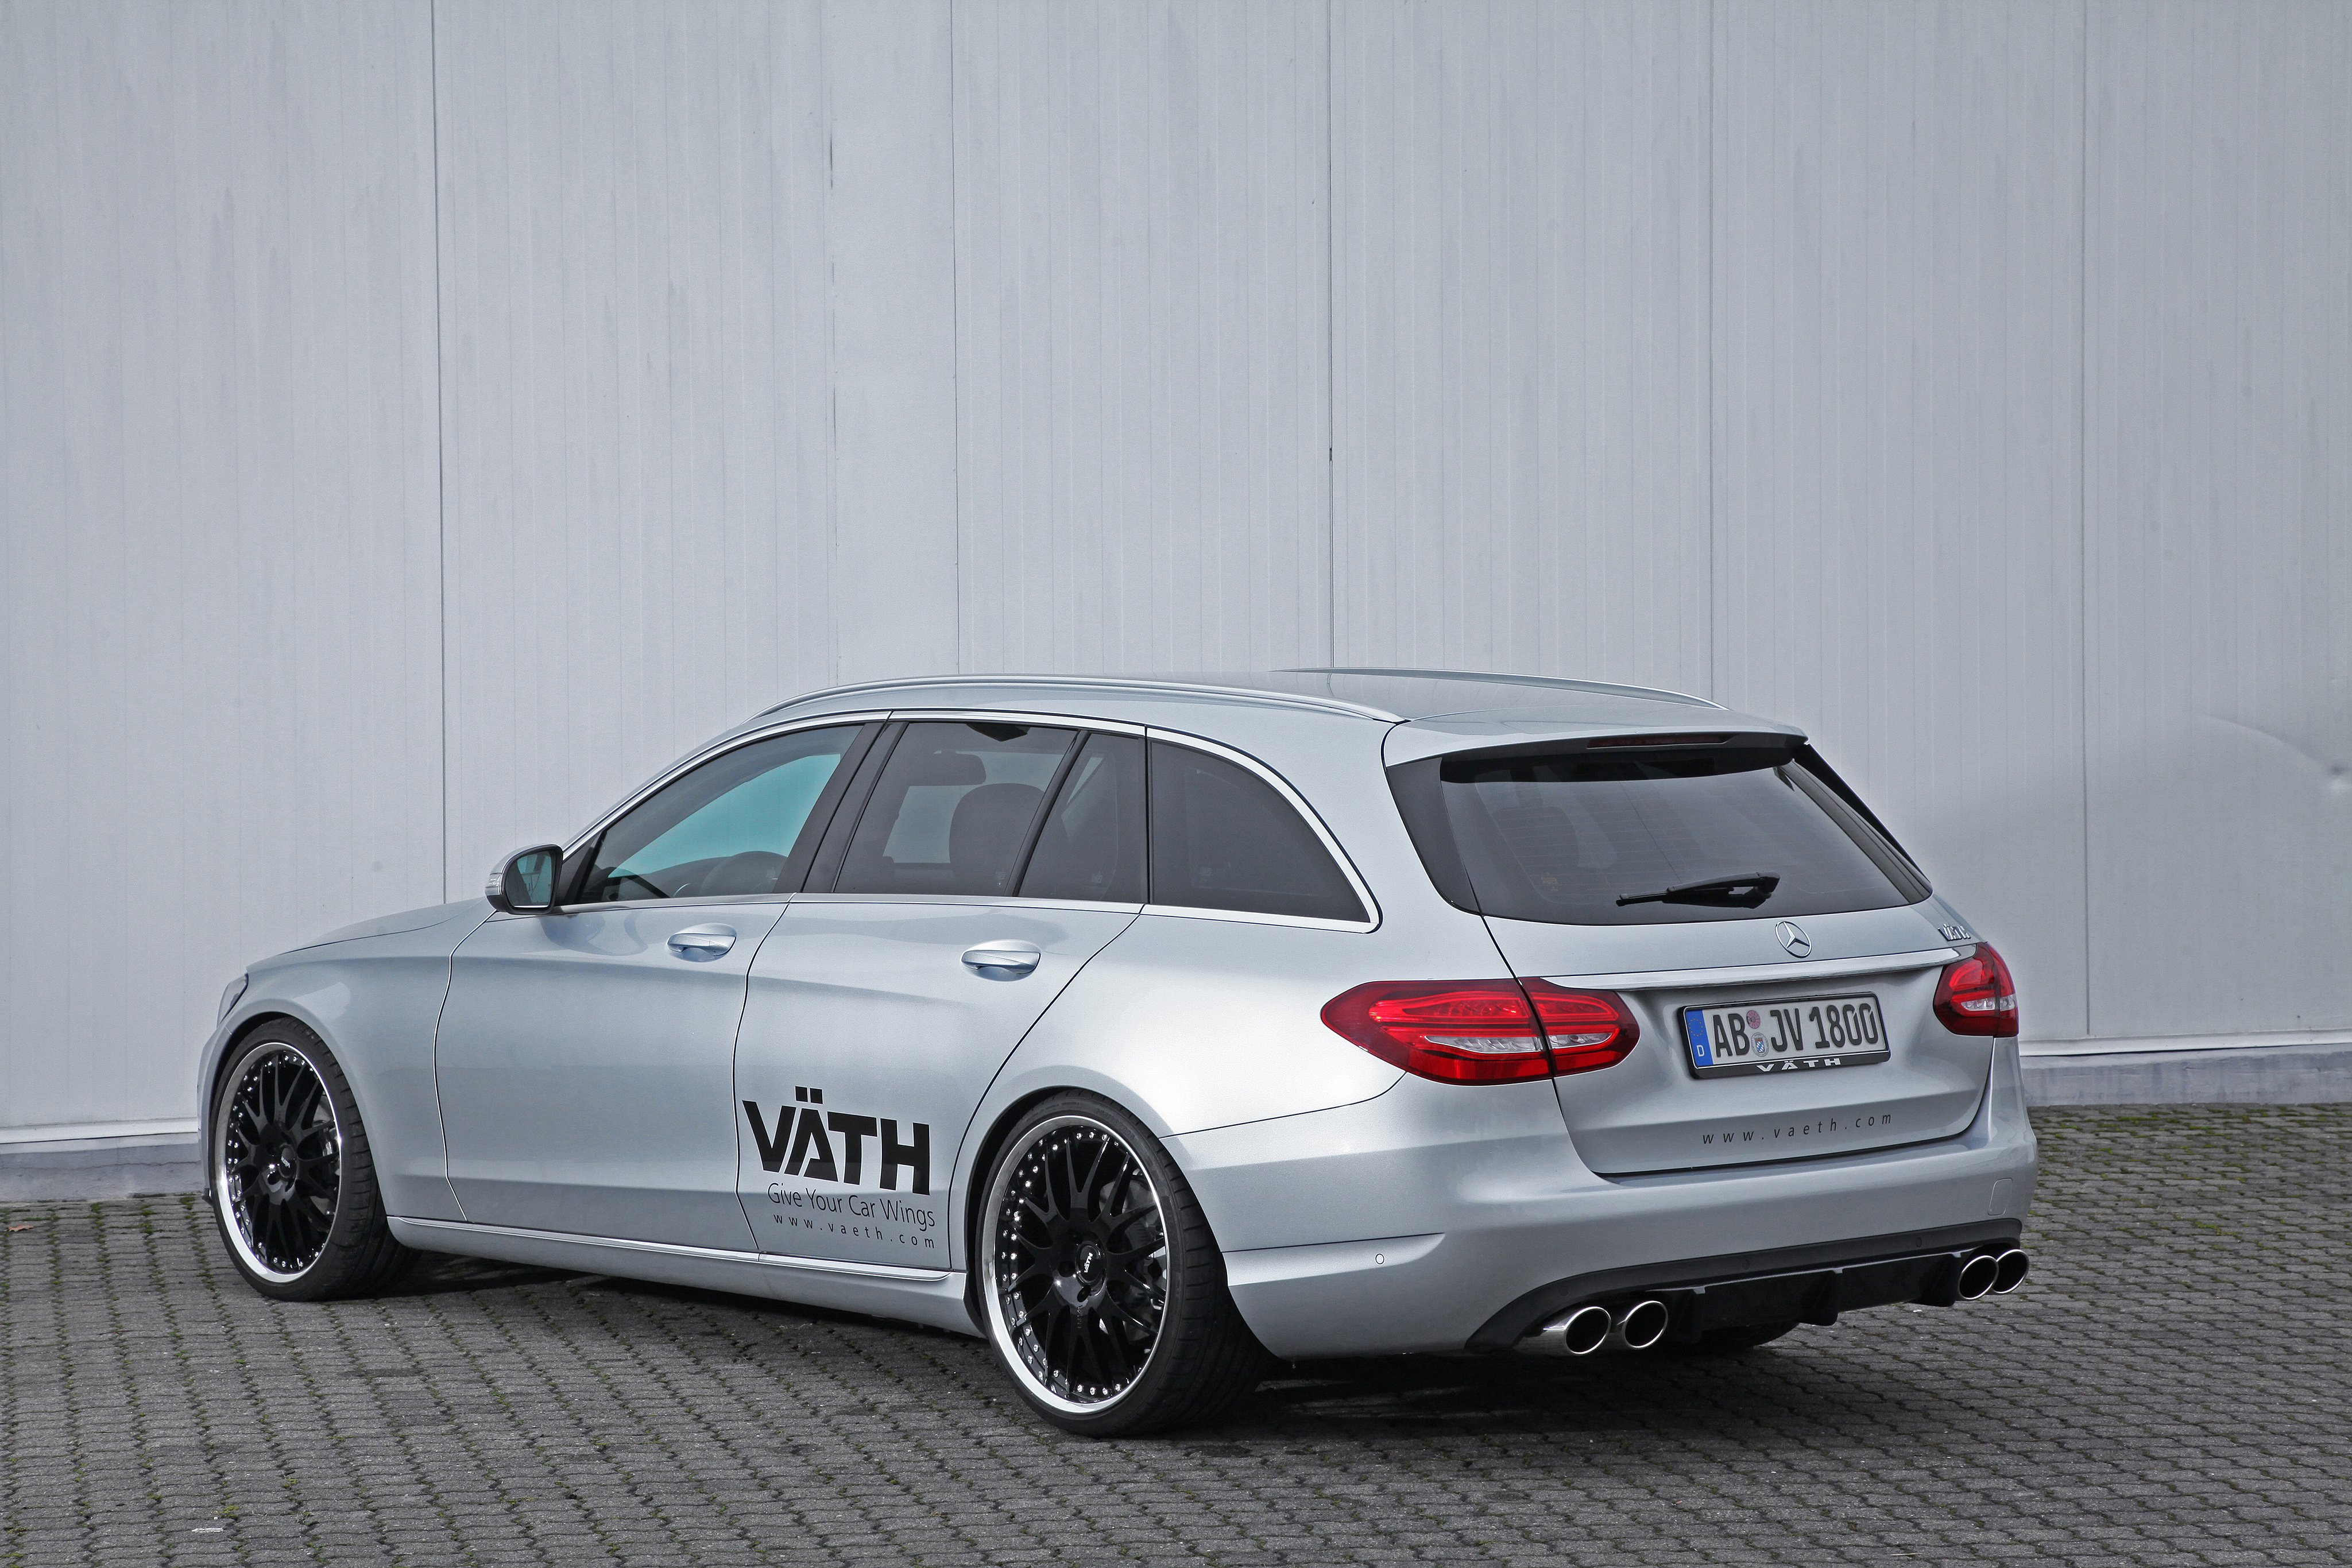 2015 vath v18 mercedes benz s205 stationwagon tuning